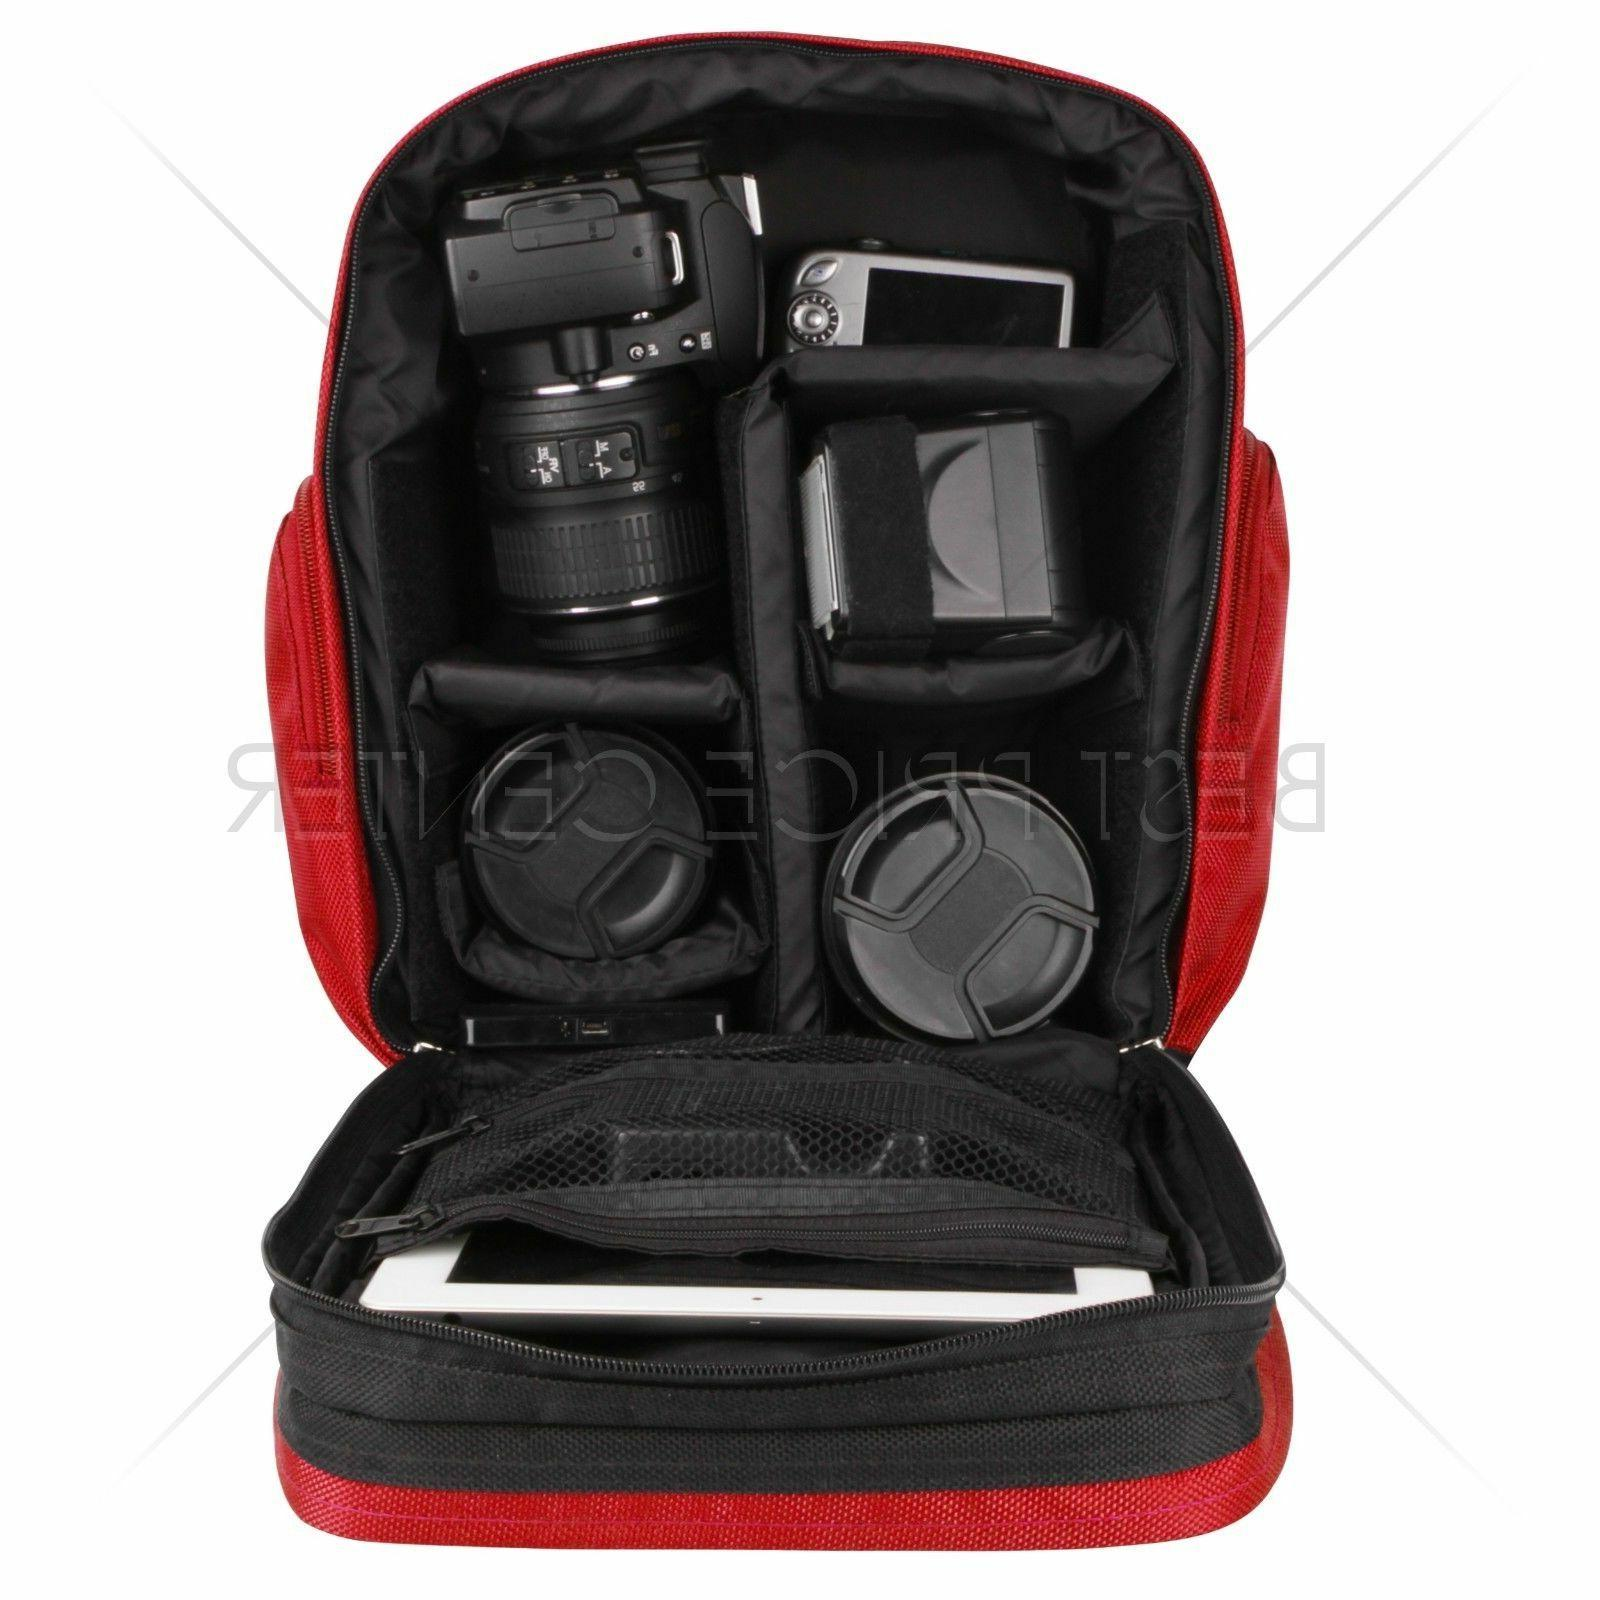 For Lytro PRO Camera Bag Case Red